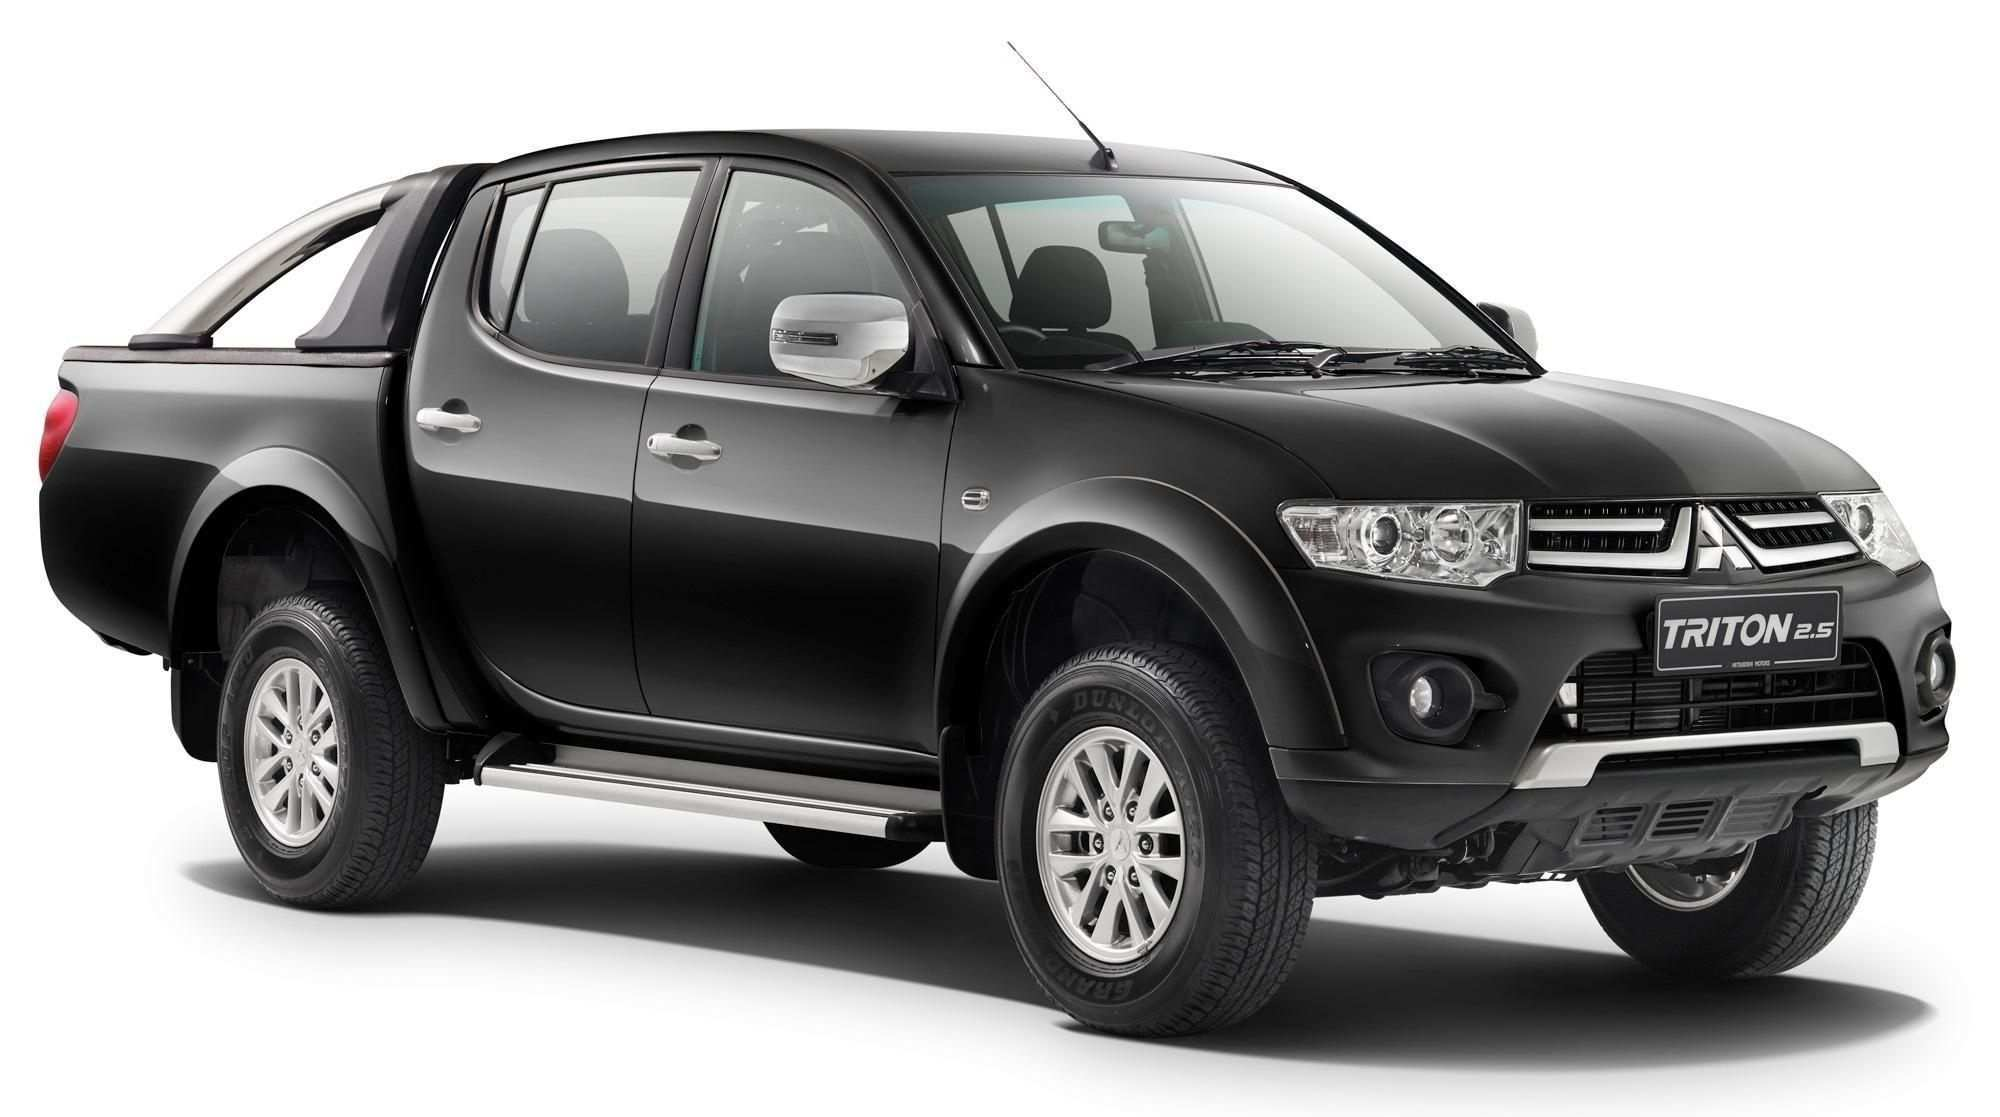 94 The Best 2019 Mitsubishi Triton Perfect Outdoor Speed Test